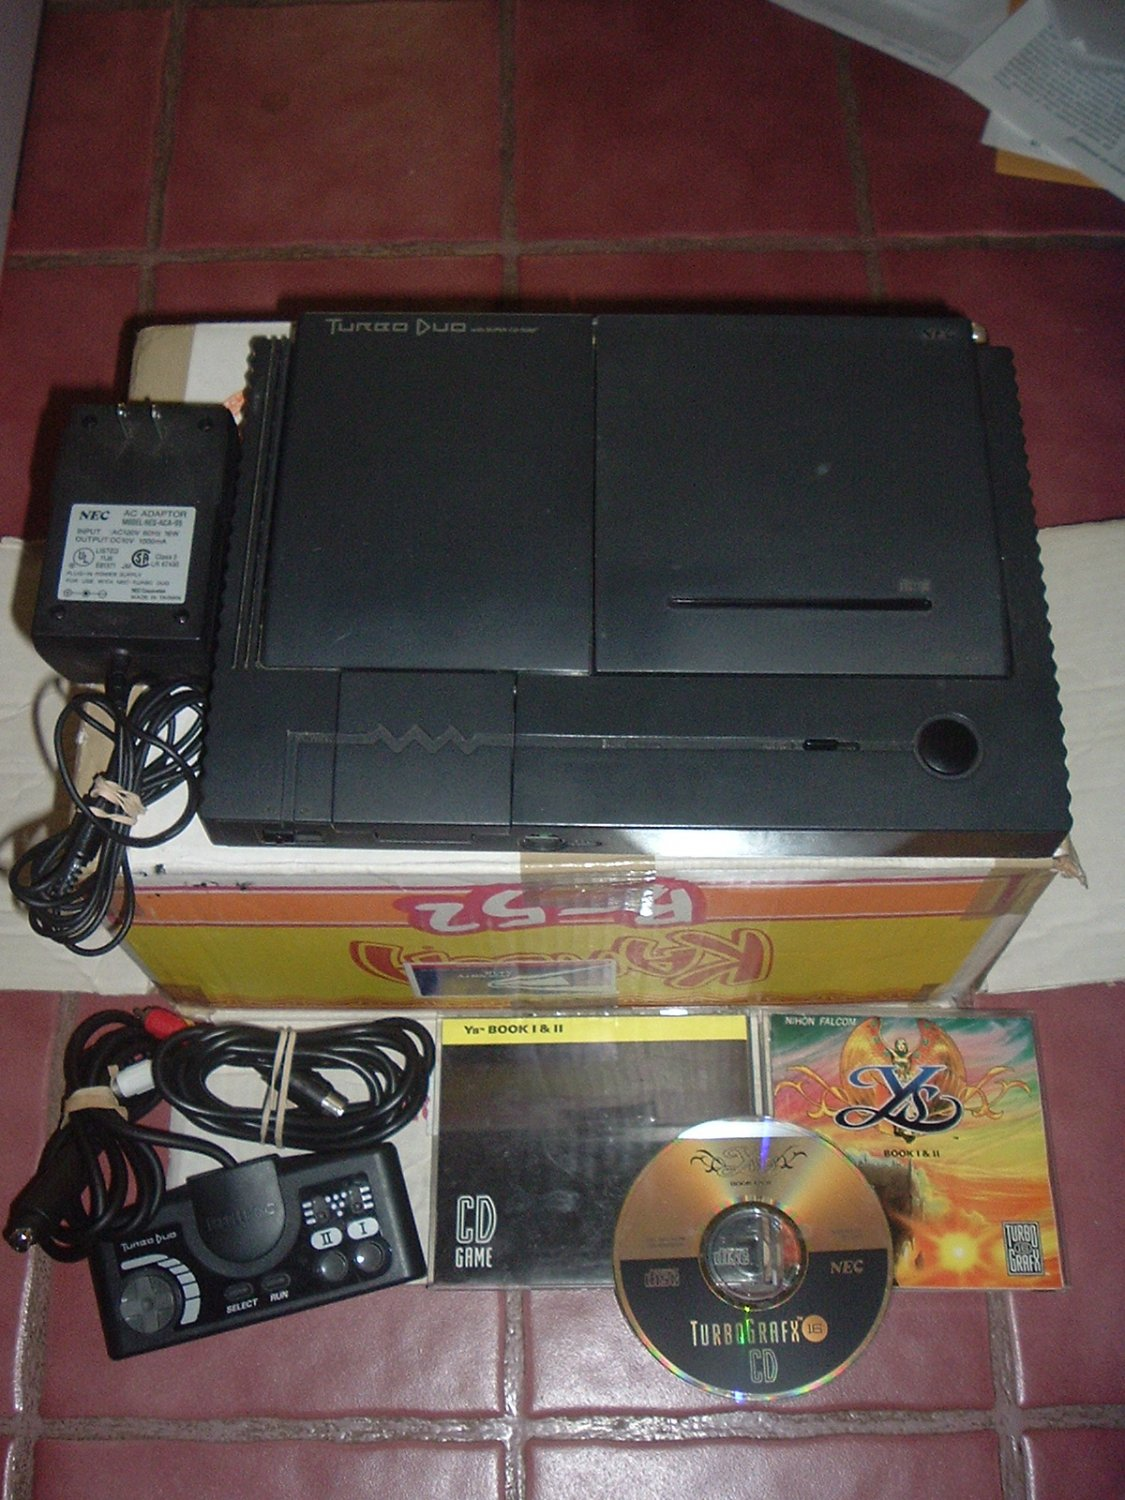 Turbo Duo System VERY EXCELLENT + Ys Book I & II COMPLETE GAME (Y's 1 & 2) For Sale